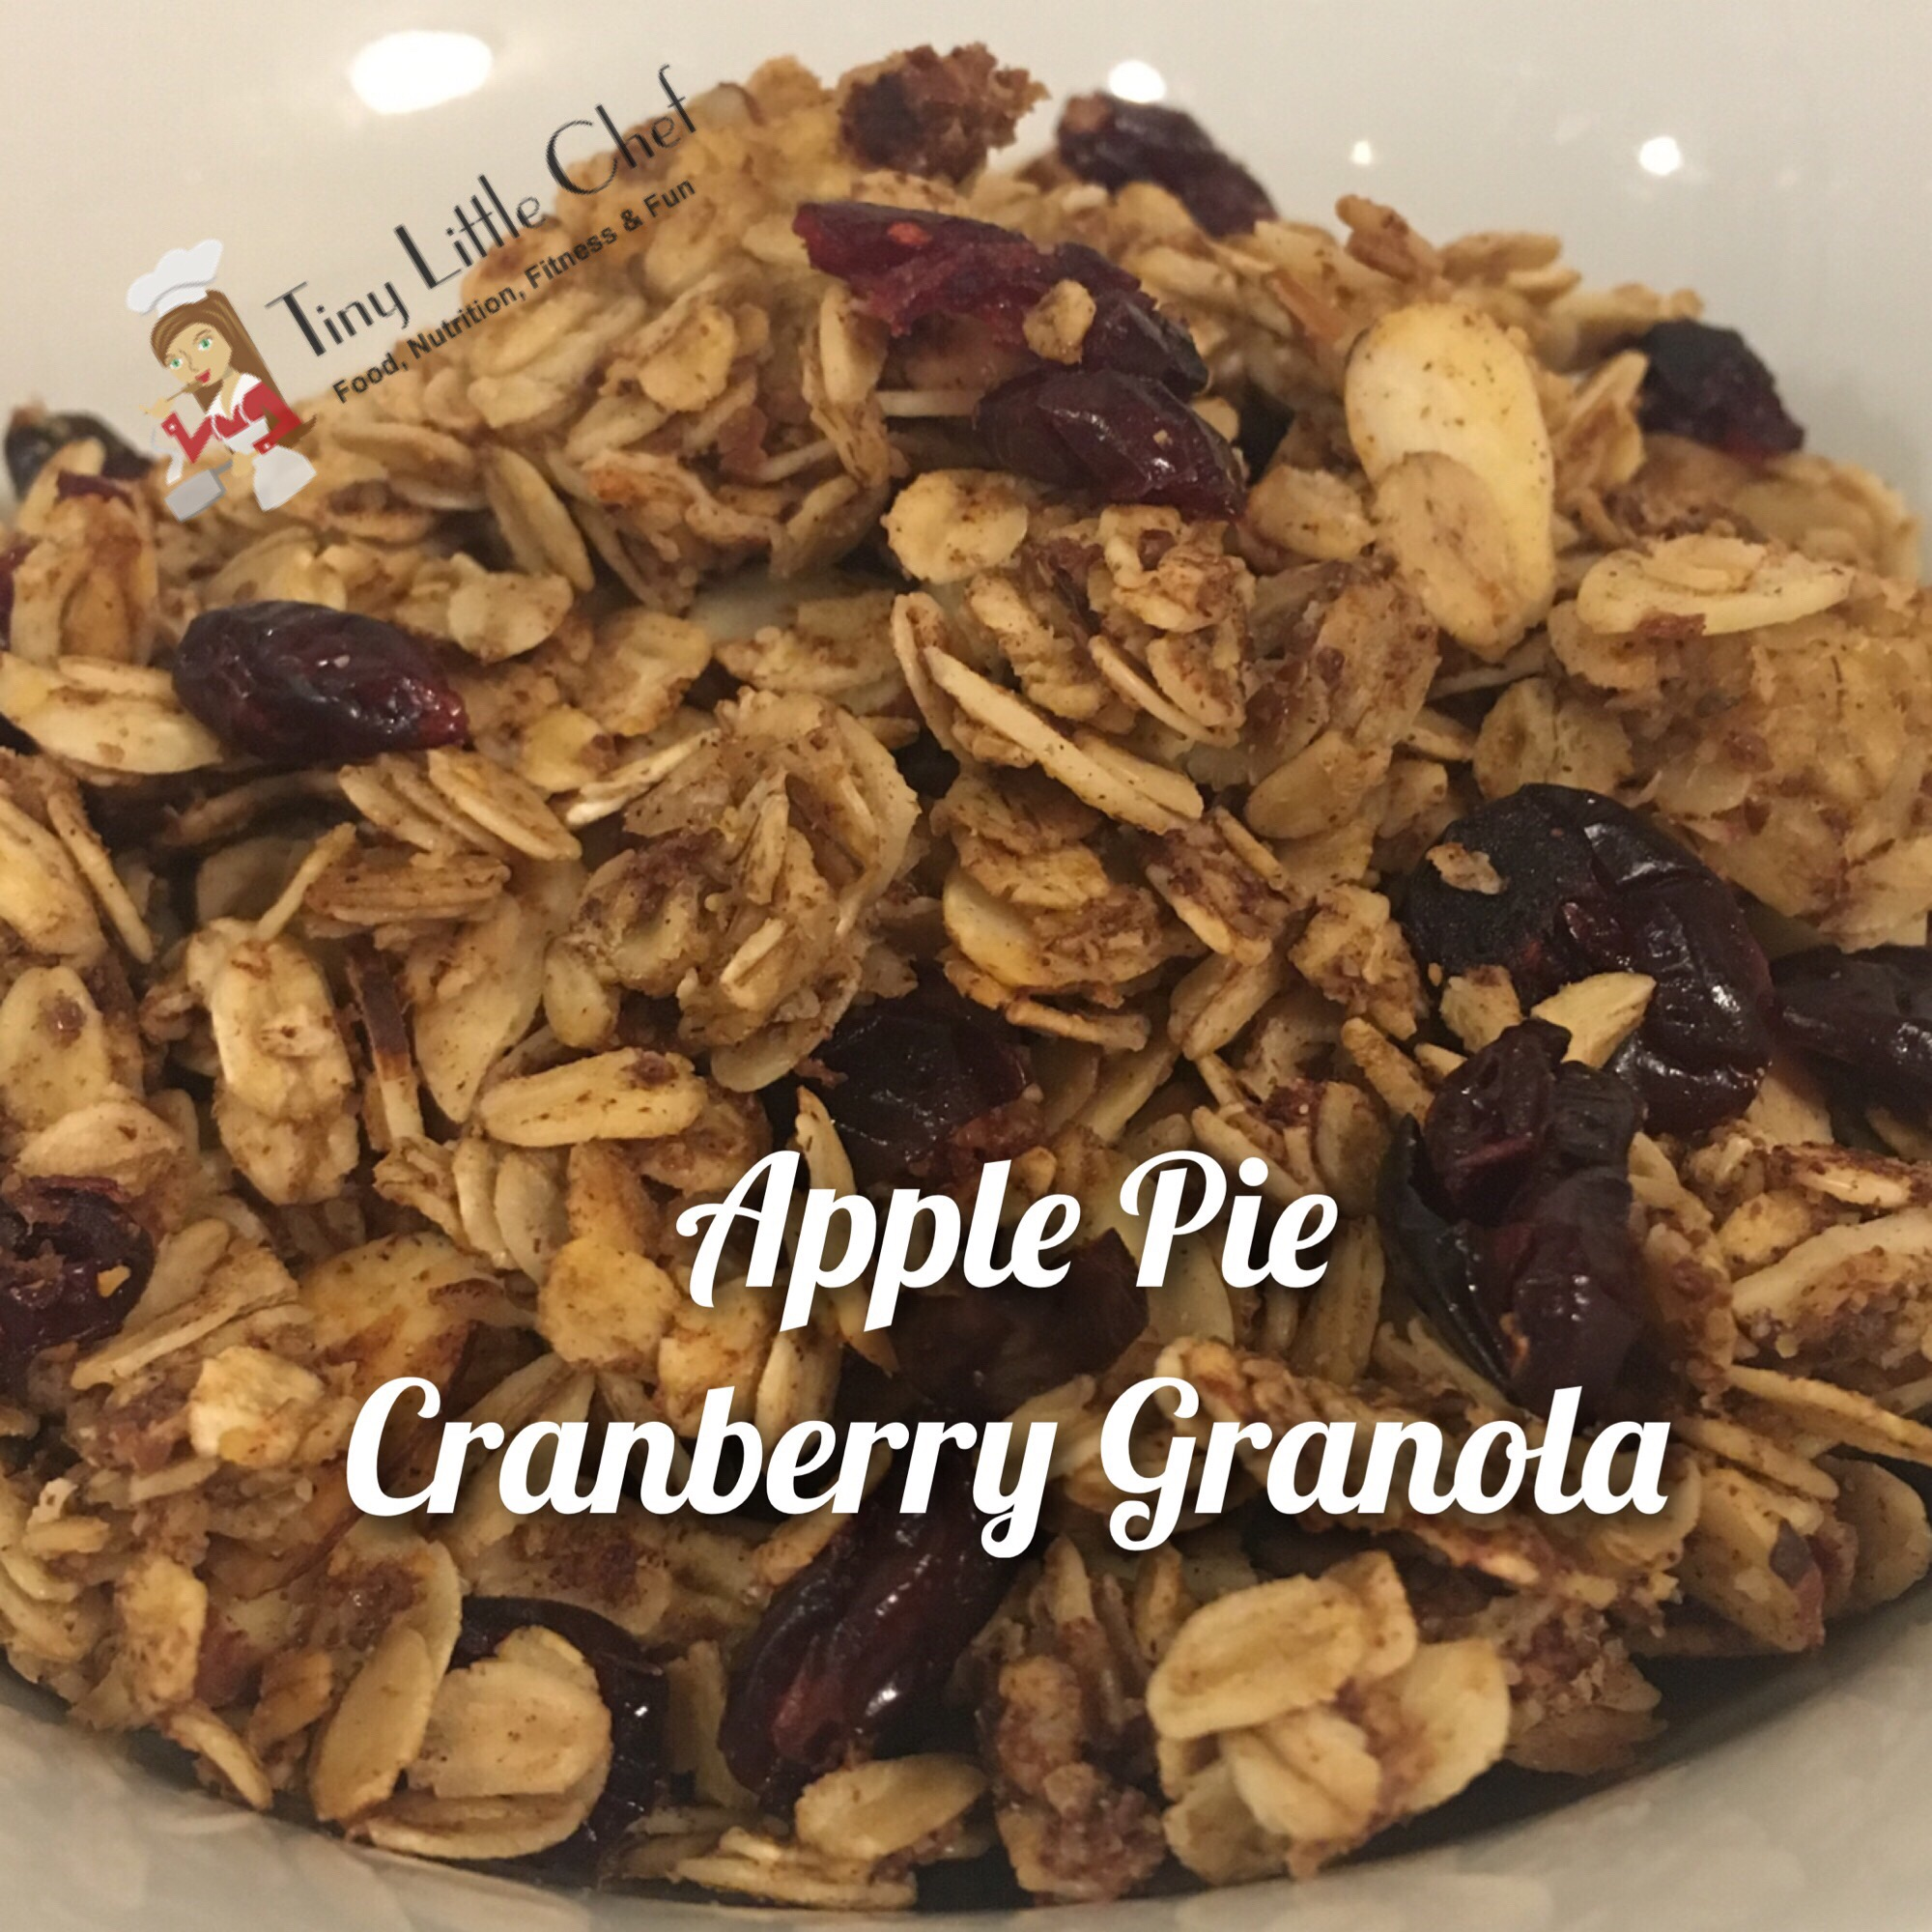 Tiny Little Chef Apple Pie Cranberry Granola